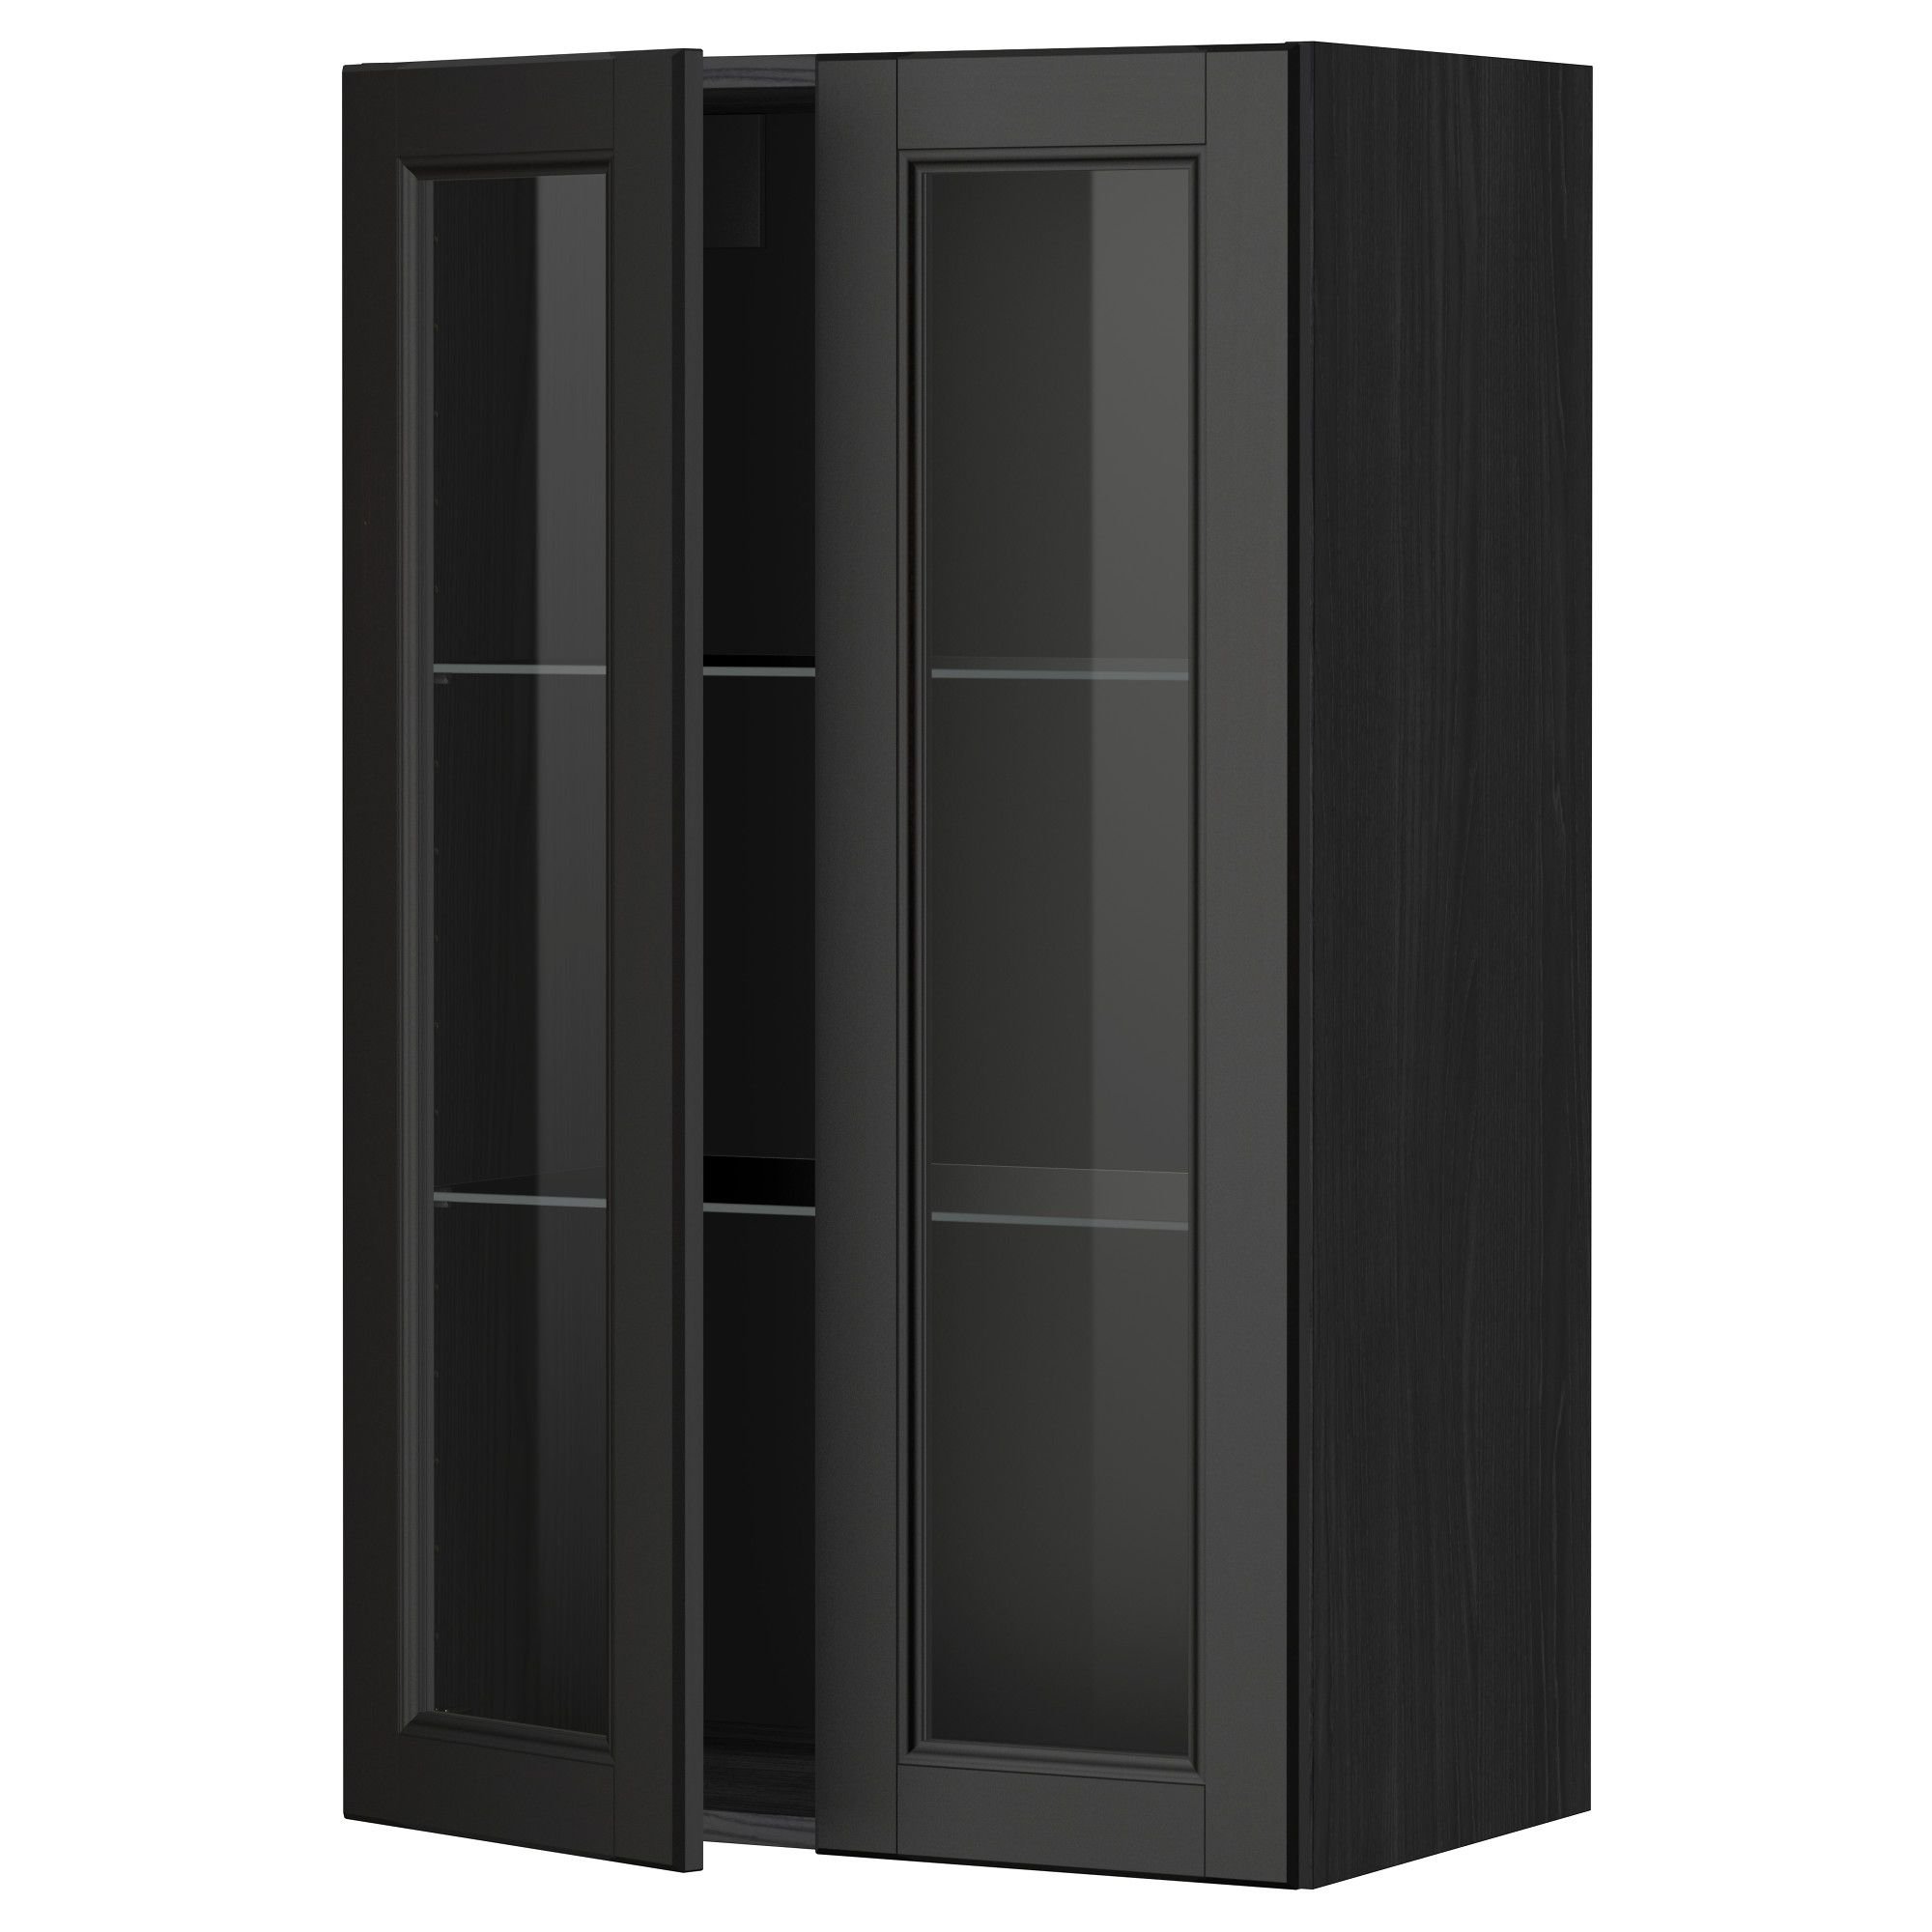 r sultat de recherche d 39 images pour meuble haut ikea vitr etagere bois laxarby maison. Black Bedroom Furniture Sets. Home Design Ideas